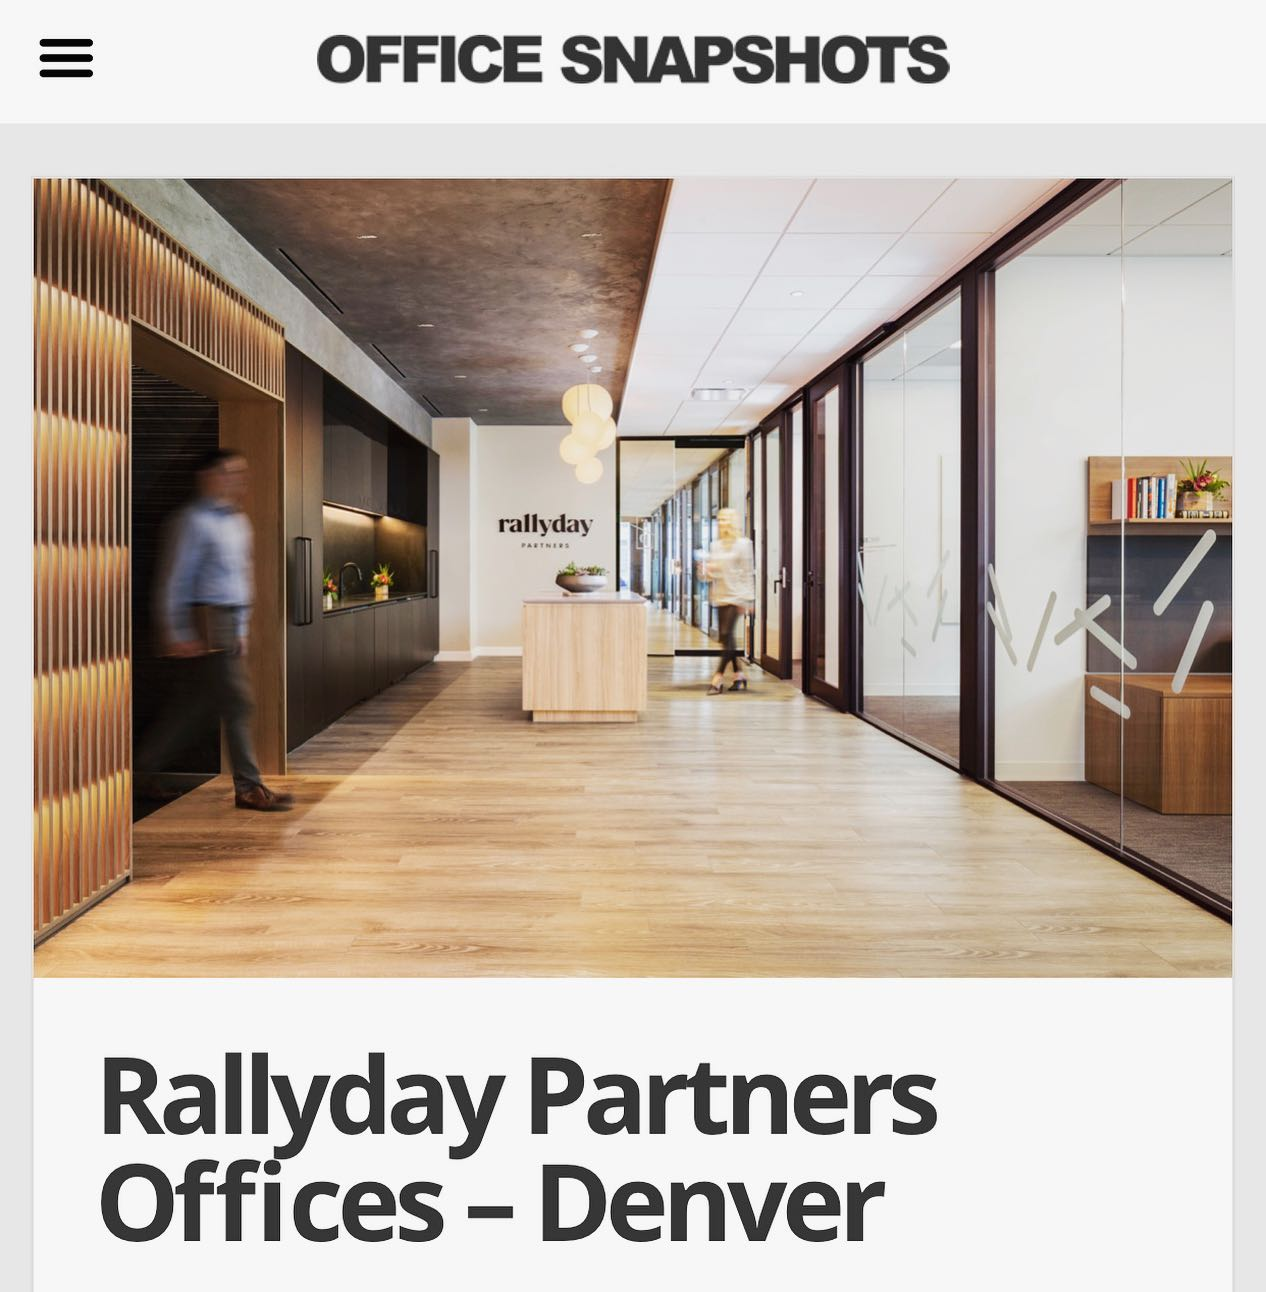 We are thrilled to have our corporate office design for Rallyday Partners featured on @officesnapshots ! Check out the full write up and photos on their website, link in bio. #welistenthencreate #interiordesign #denverdesign #interiorarchitecture #rallydaypartners #lounge #cherrycreekdenver #wooddetailing #rlounge #architecturallighting #texture #blackenedsteel